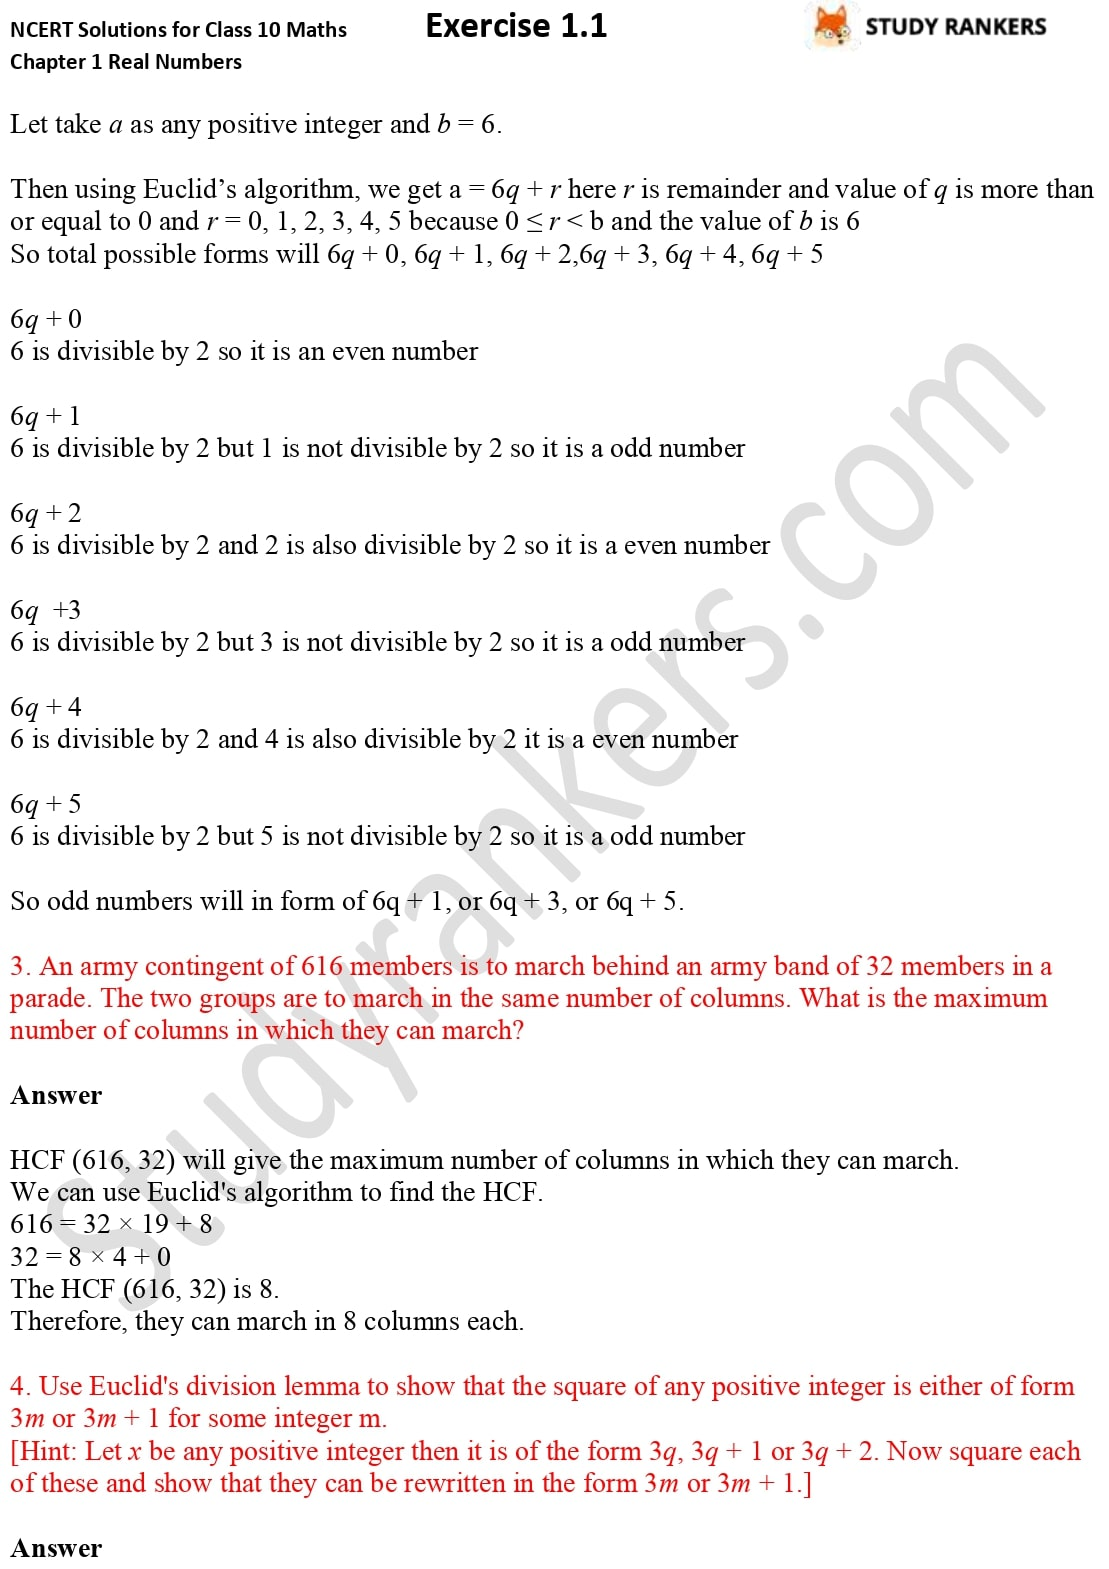 NCERT Solutions for Class 10 Maths Chapter 1 Real Numbers Exercise 1.1 2